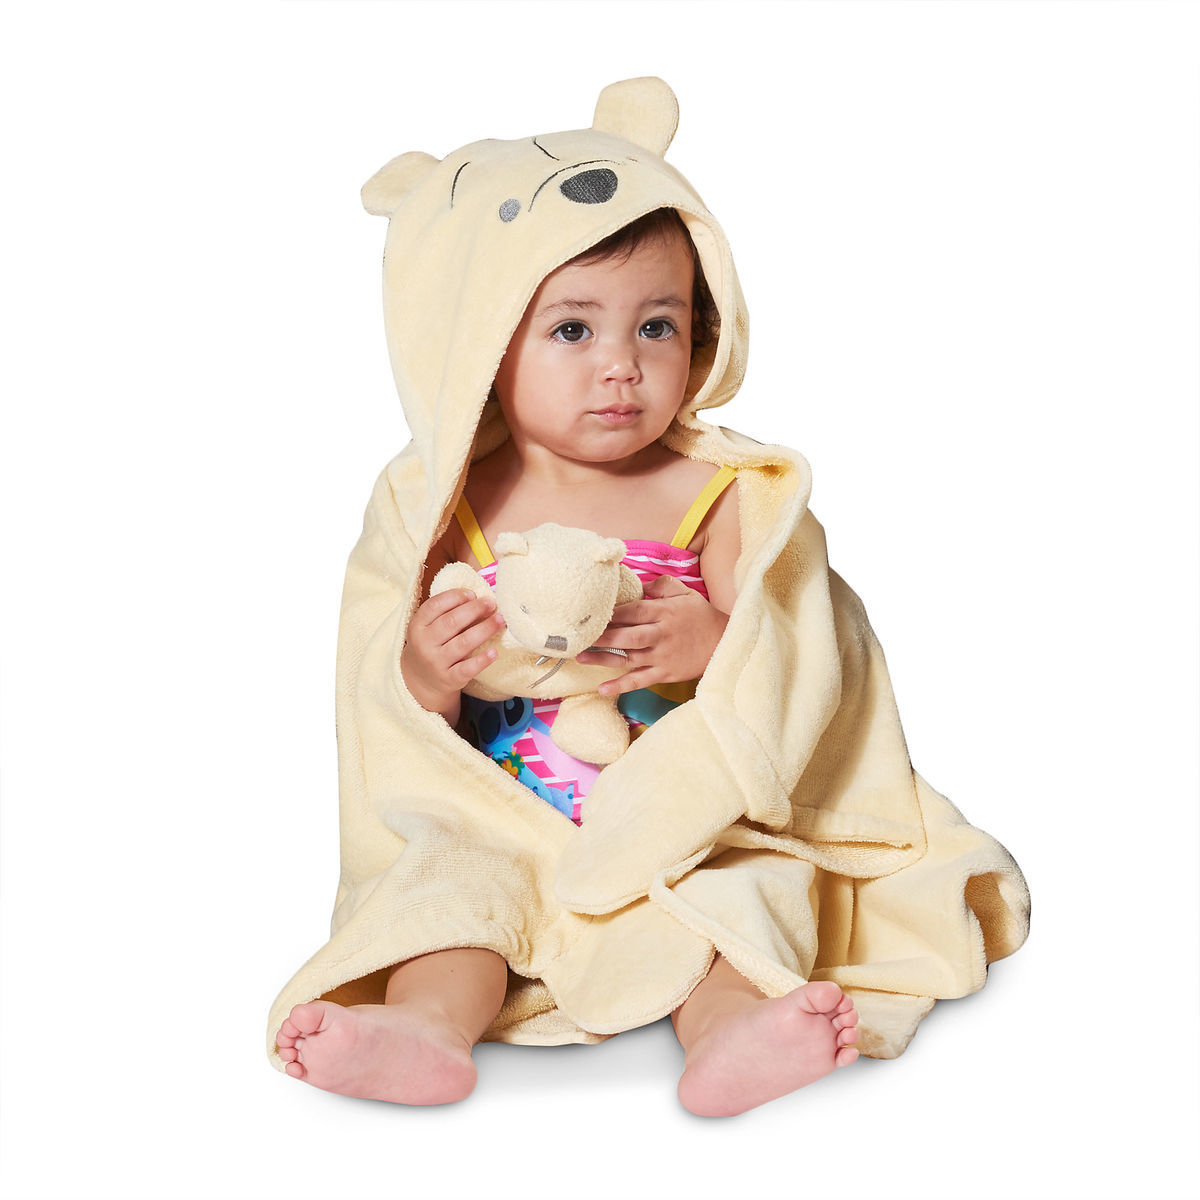 Product Image of Winnie the Pooh Hooded Towel for Baby - Personalizable # 2